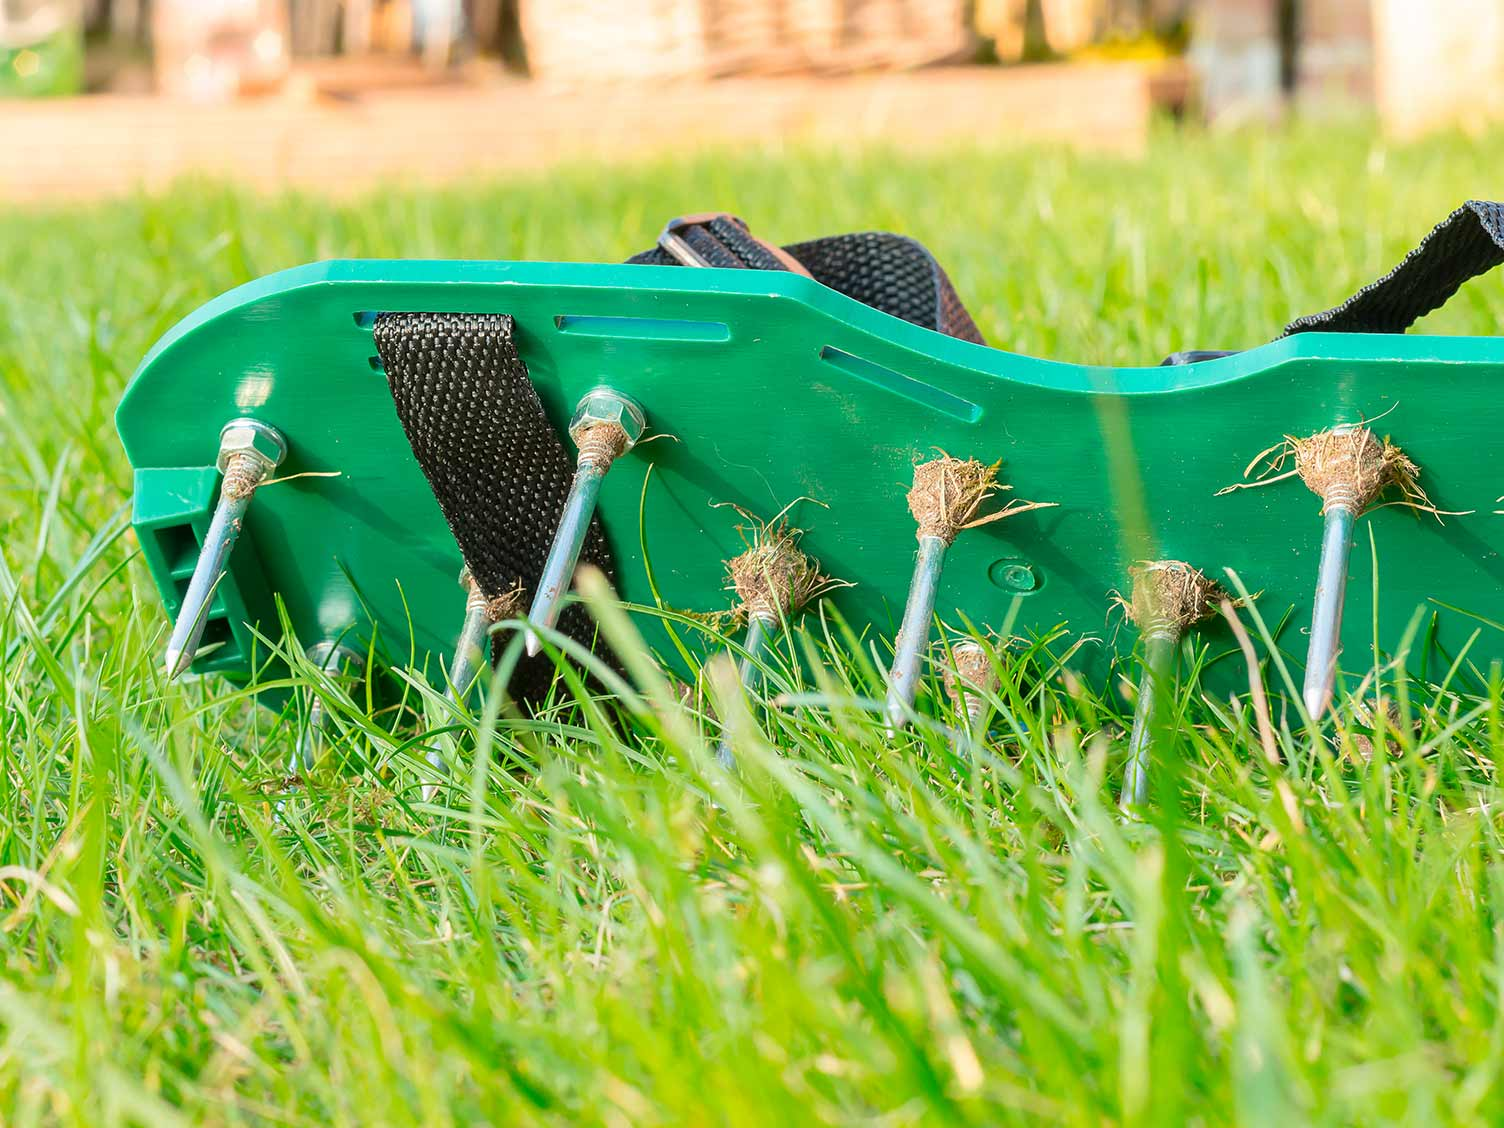 Lawn aerating shoes with spikes